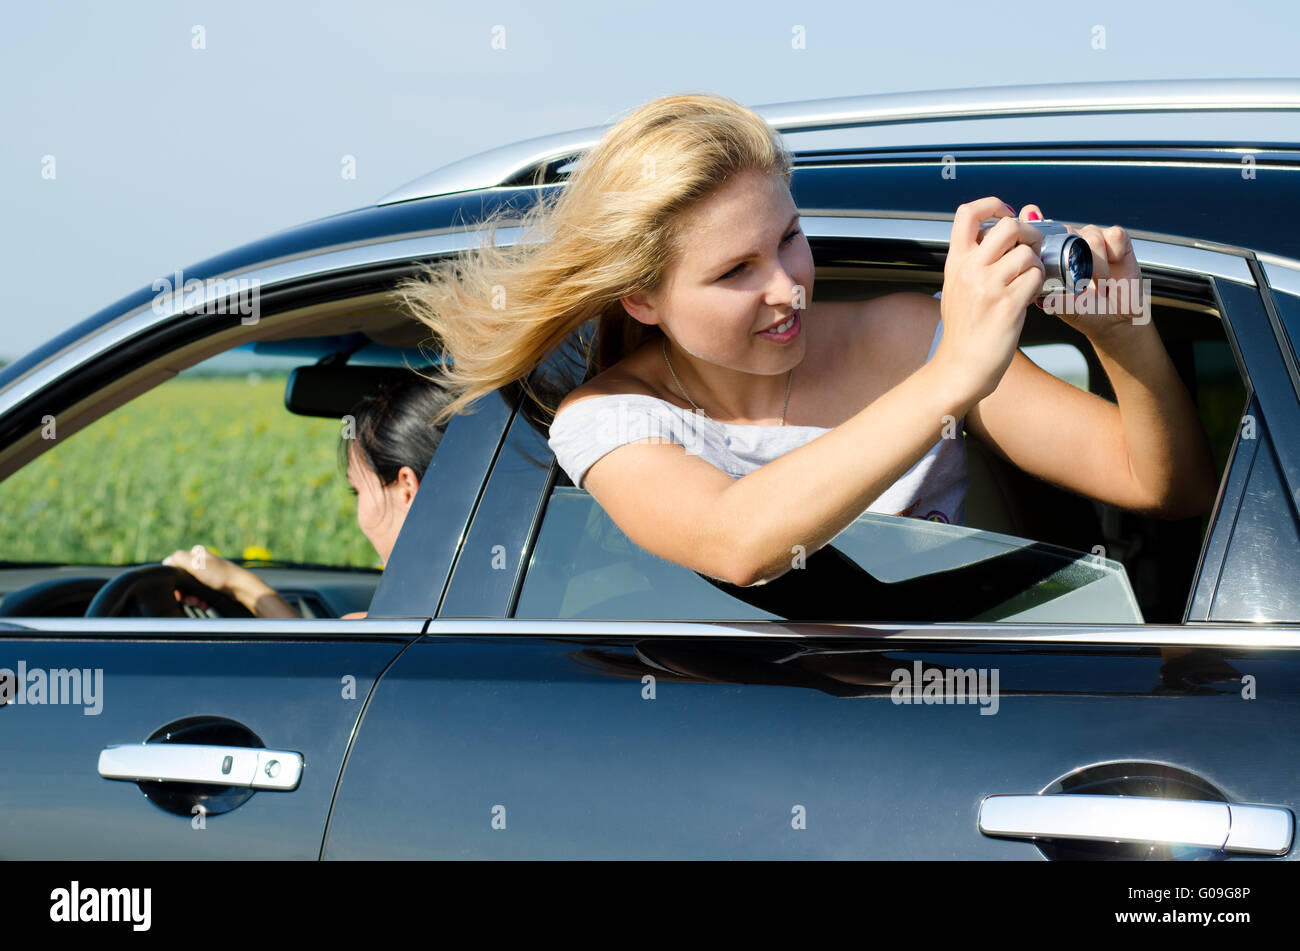 Attractive woman photographing from car window - Stock Image